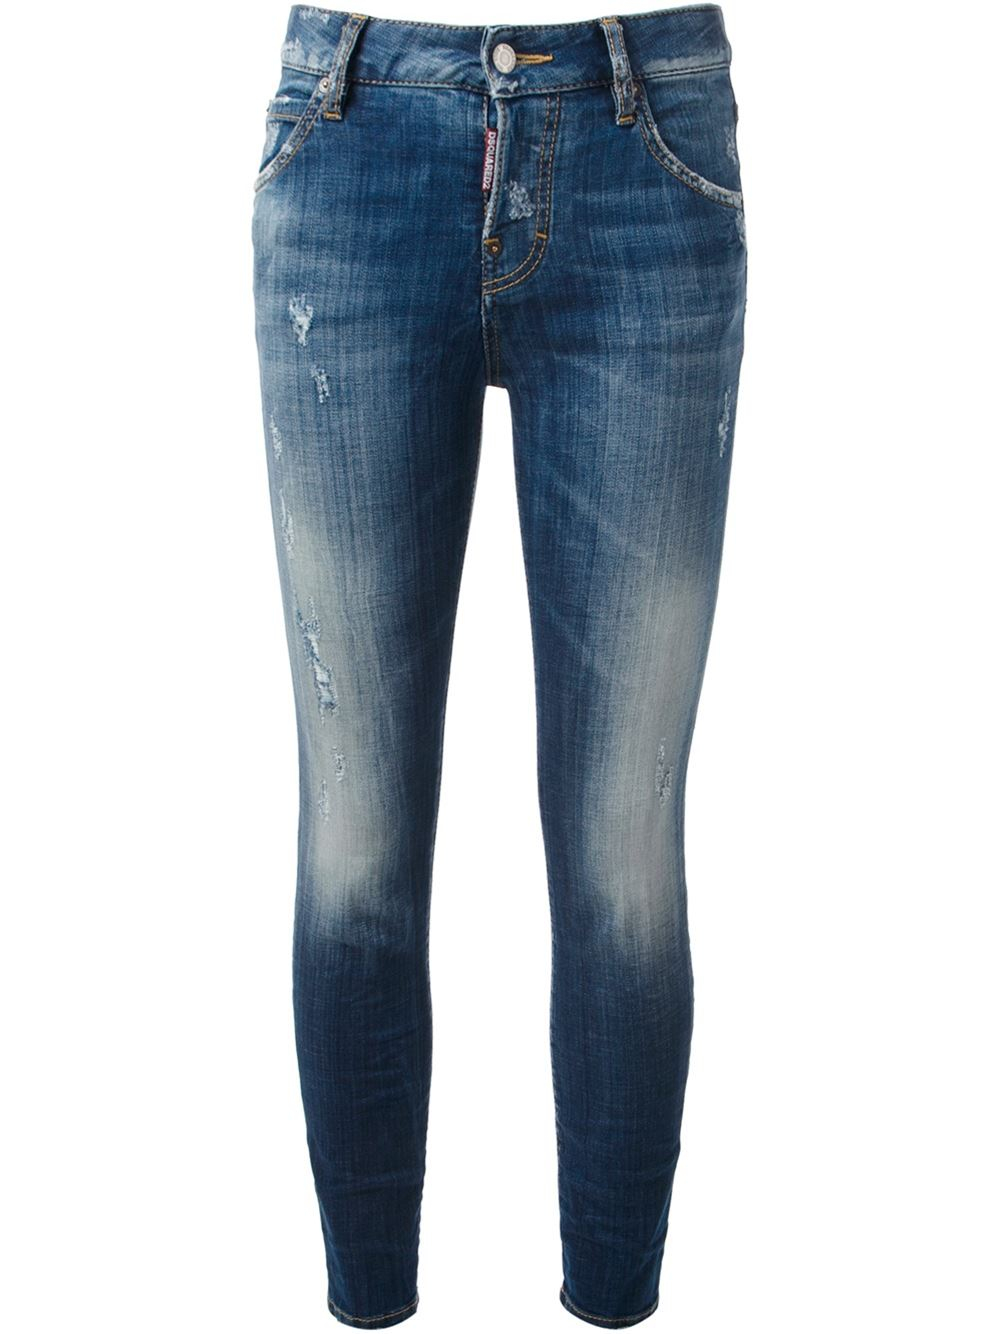 Dsquaredu00b2 u0026#39;Cool Girlu0026#39; Jeans in Blue | Lyst